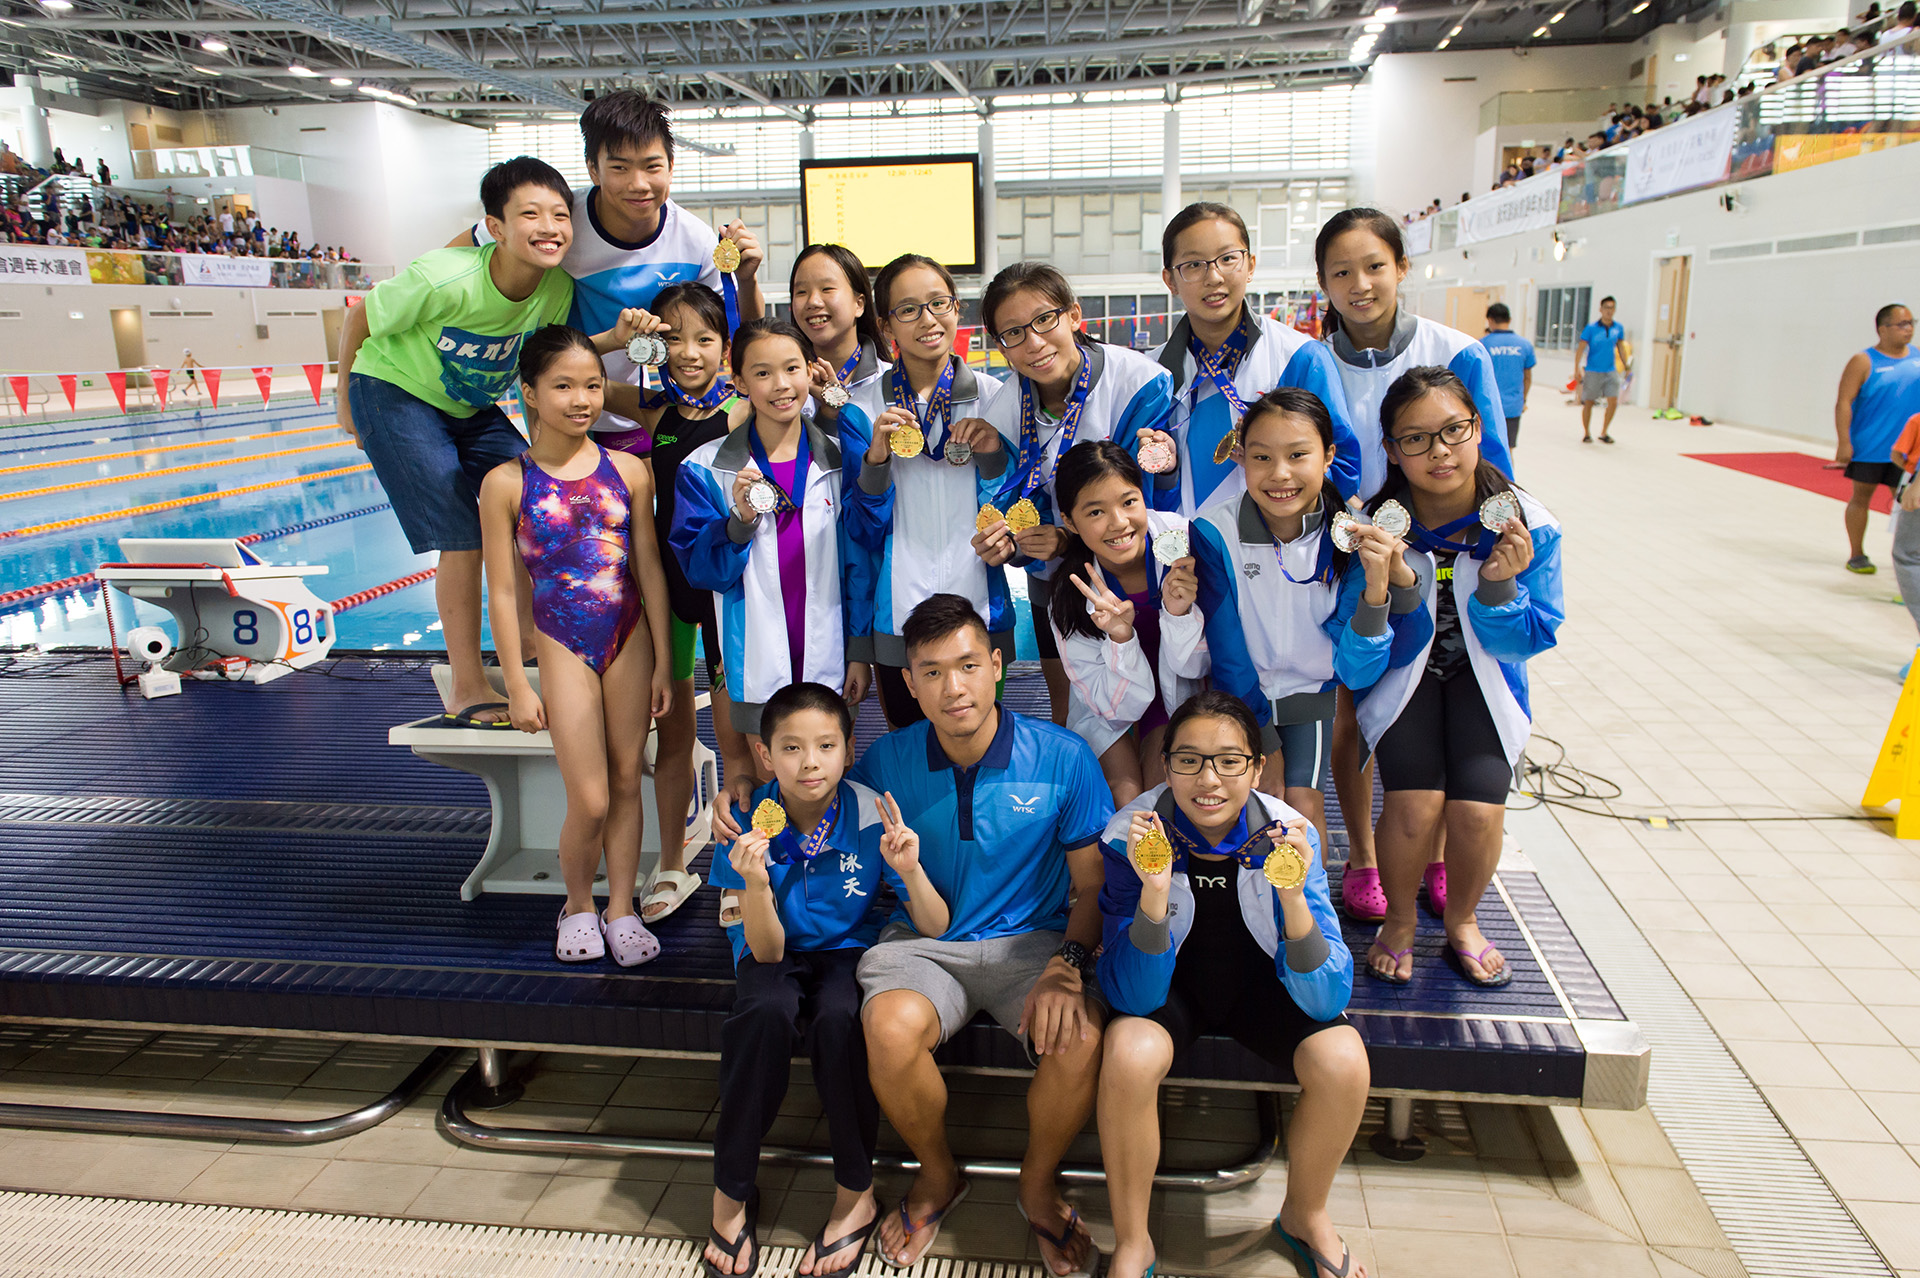 Win Tin Swimming Club - 28th Annual Swimming Gala 4